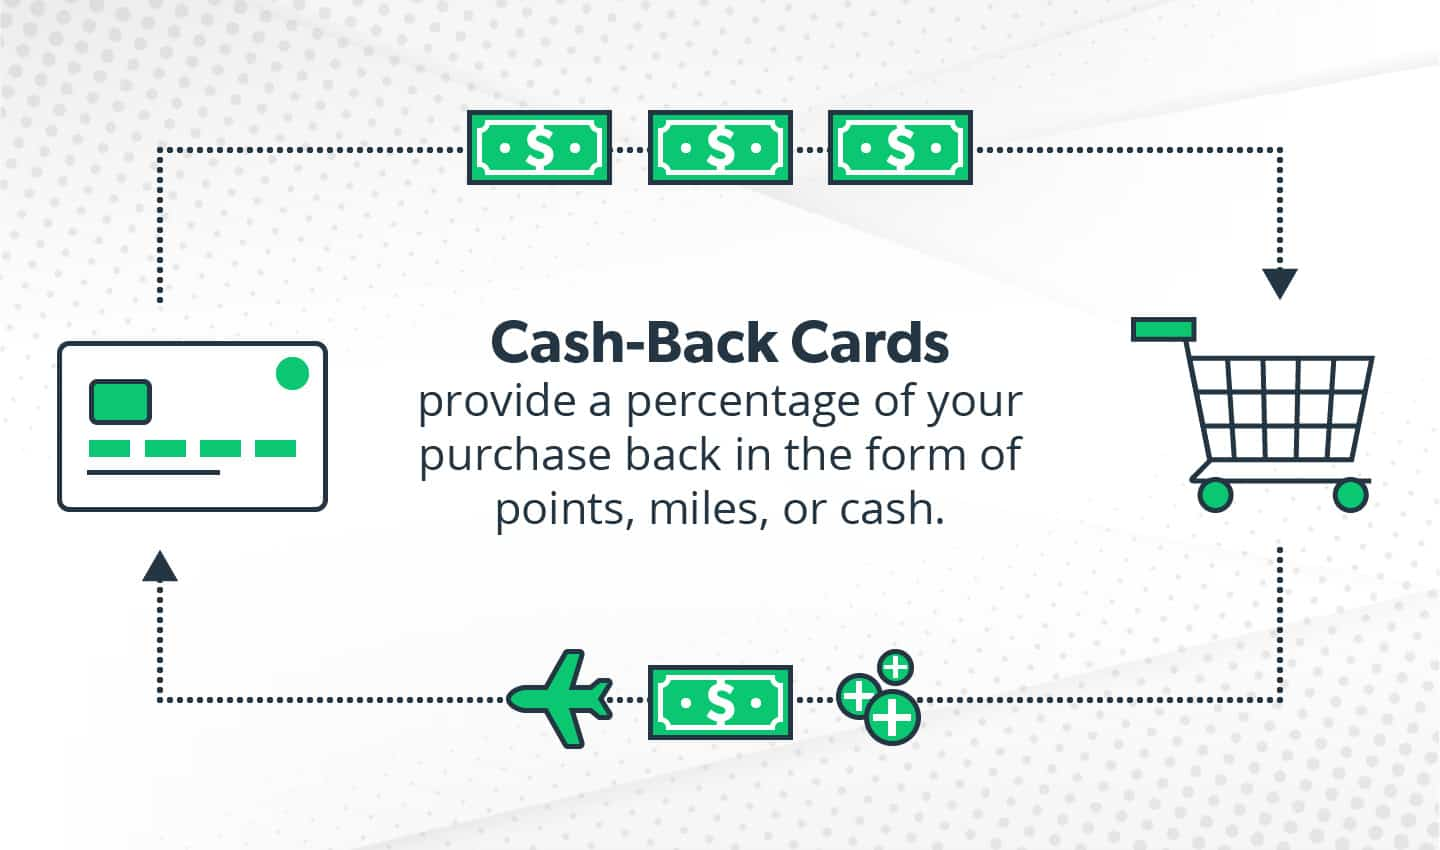 Cash-back credit card explanation. Cash-back cards provide a percentage of your purchase back in the form of points, miles, or cash.